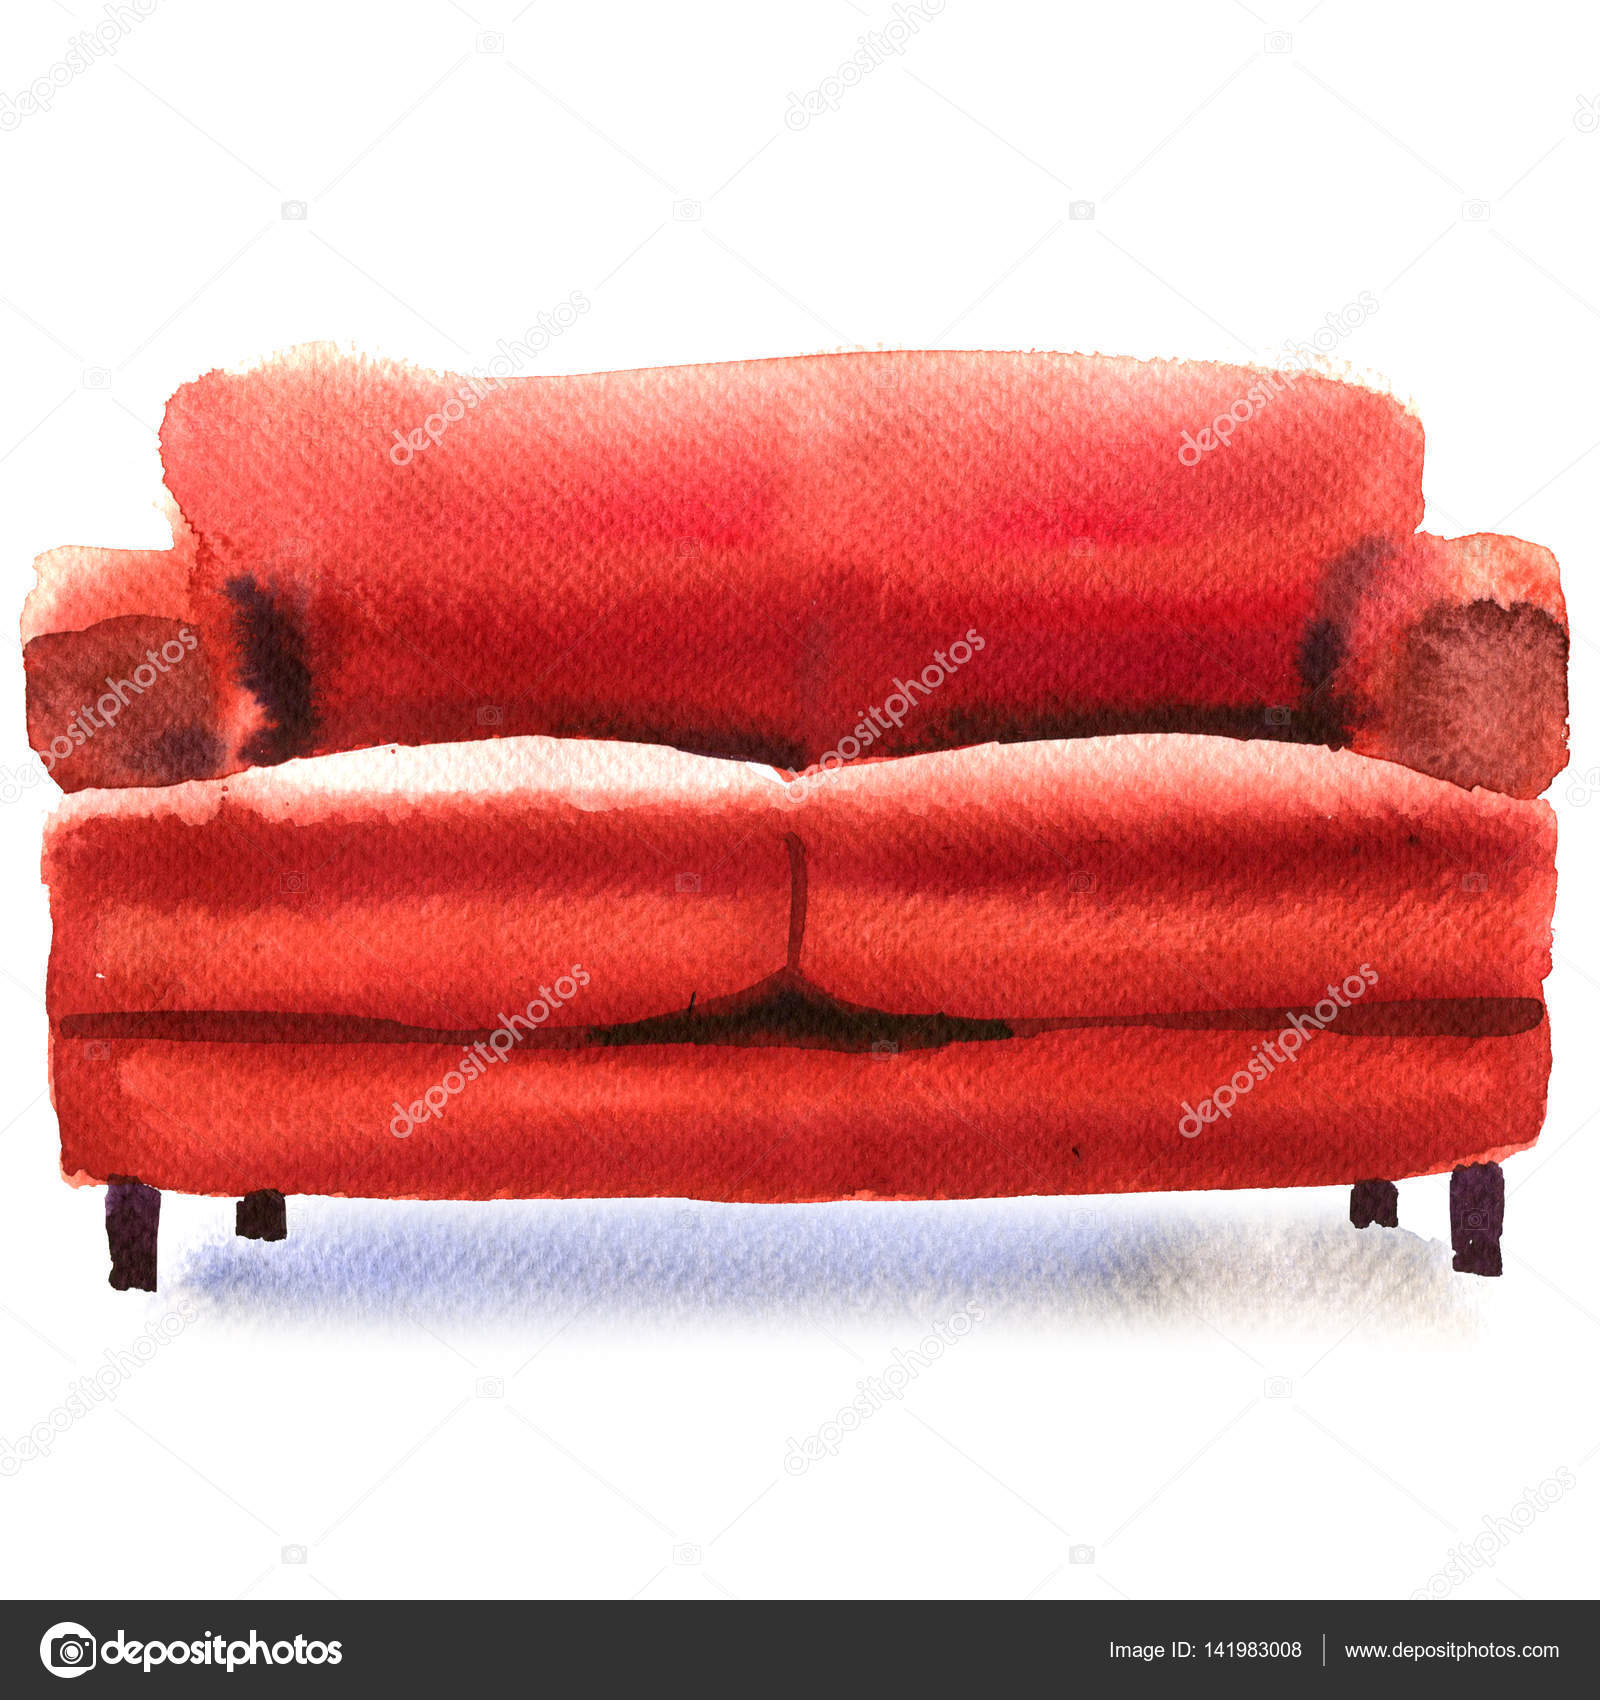 Bequeme Couch Rotes Sofa Bequeme Couch Isoliert Aquarell Illustration Auf